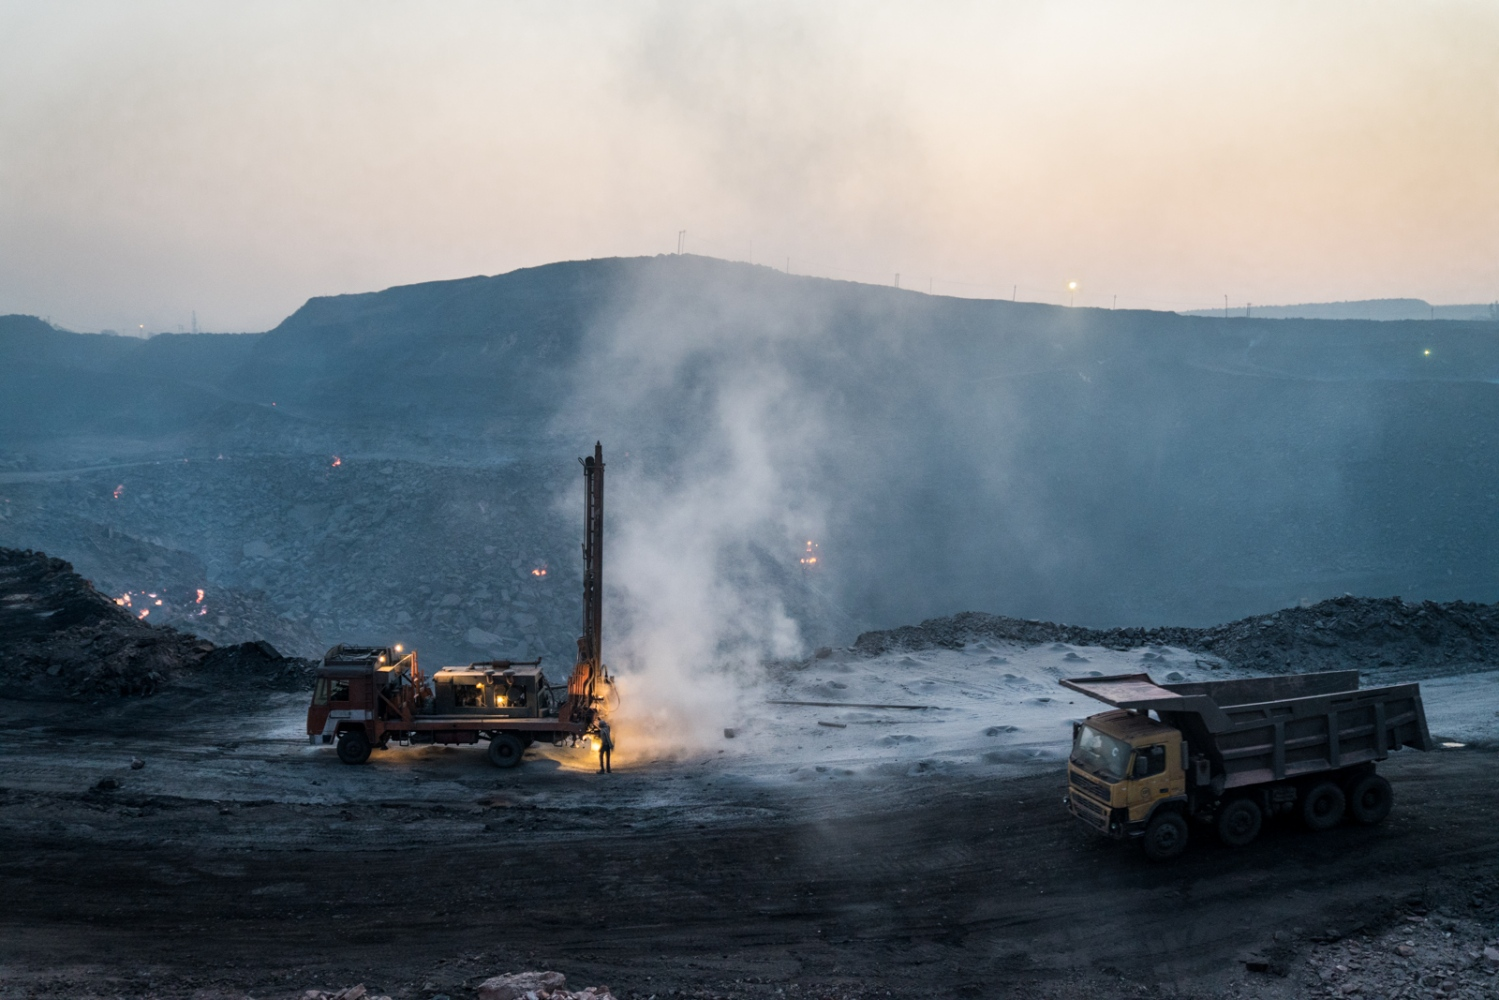 One of Jharia's largest opencast coal mines being worked on. Patches of red in the distance show the extent of the fire.